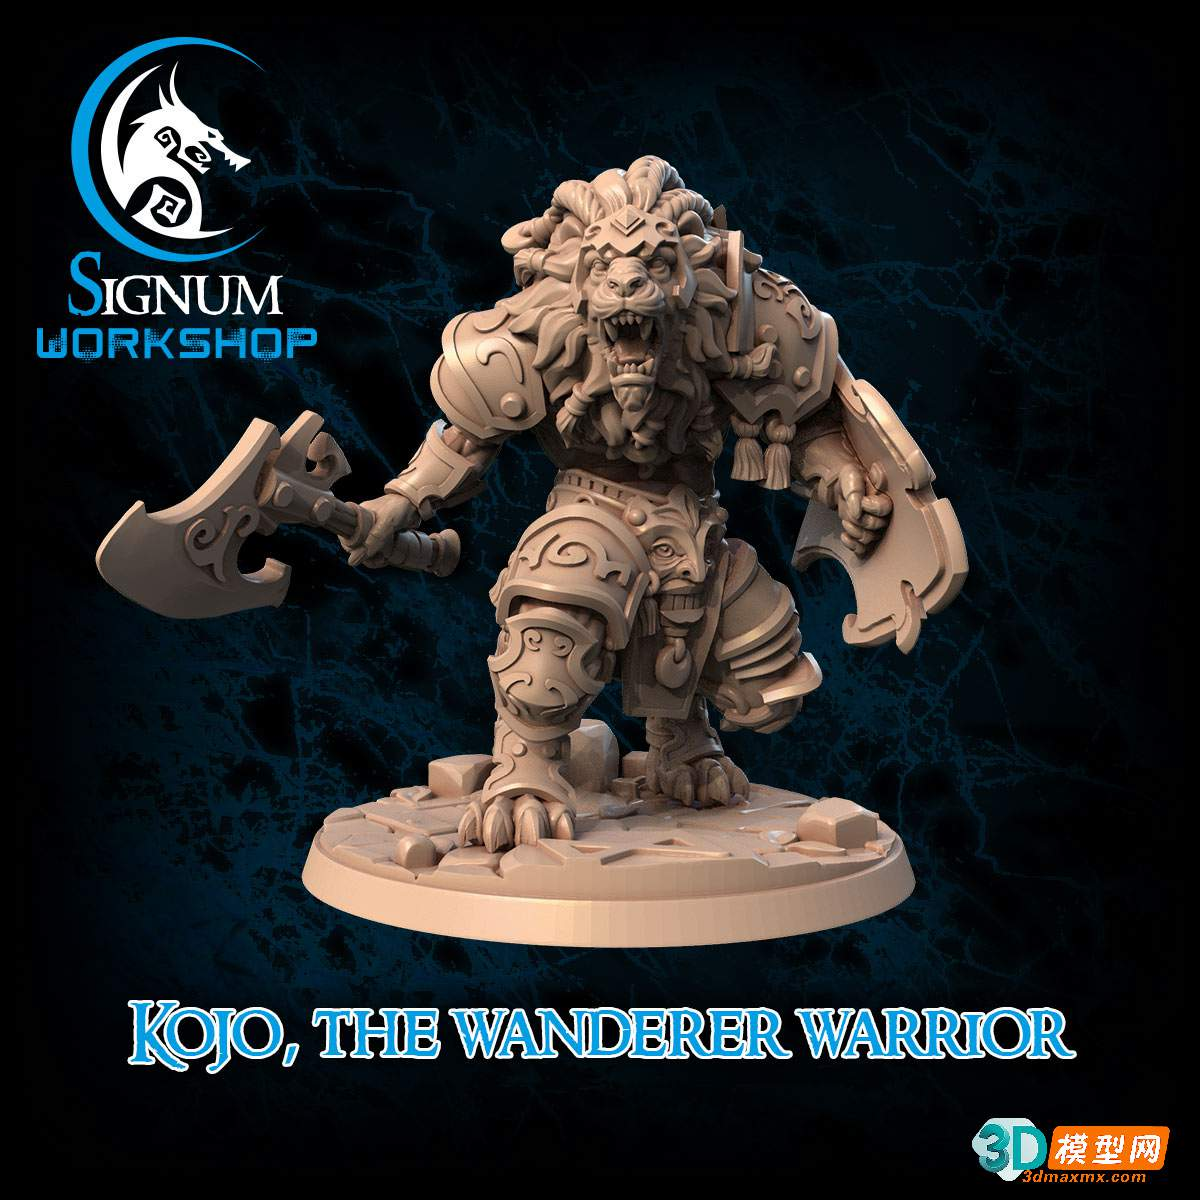 kojo the wanderer warrior + Pre supports插图